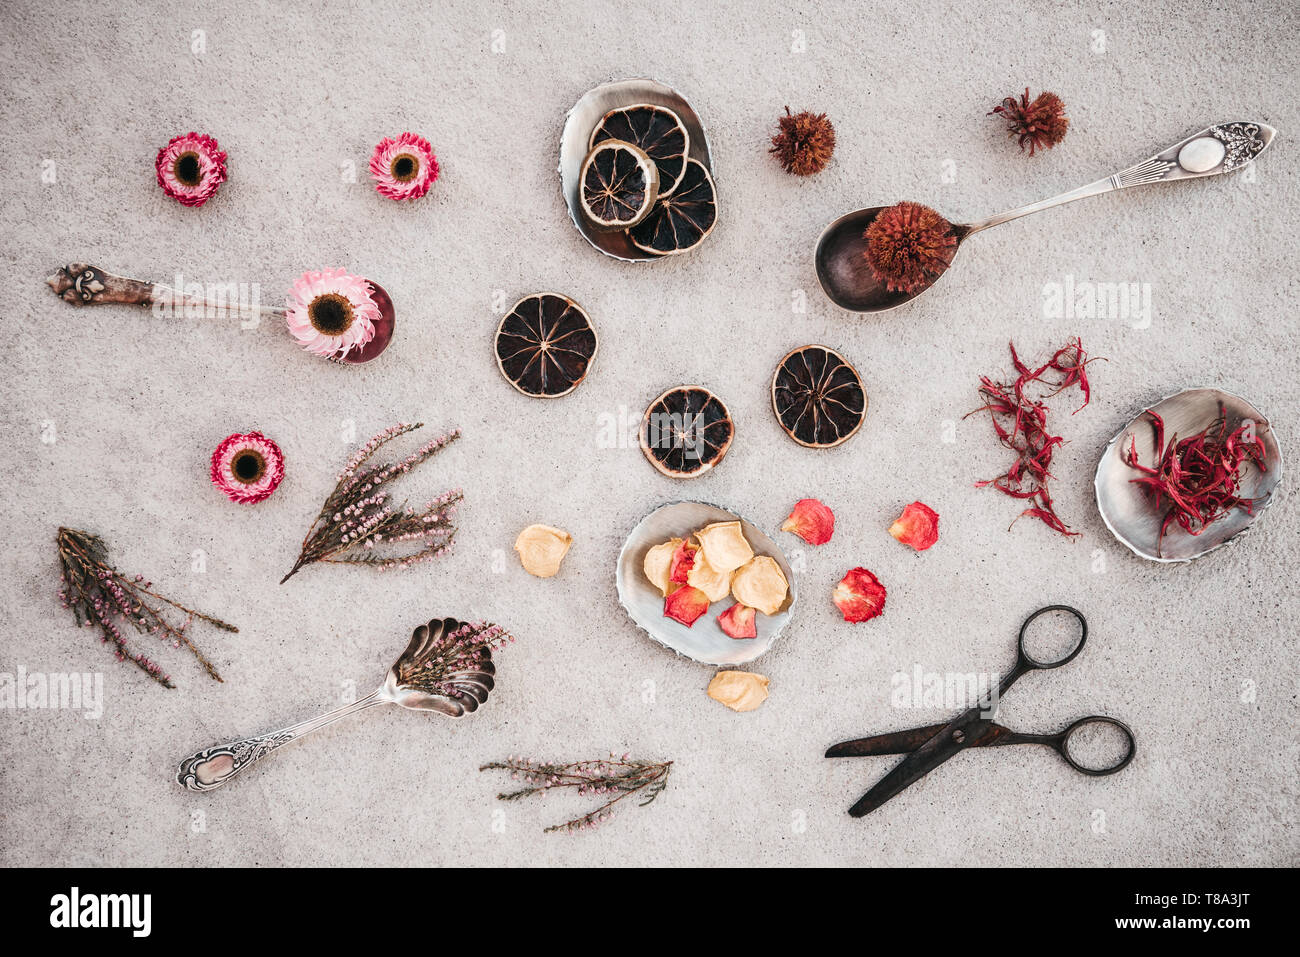 Rusty vintage scissors, herbs and flowers on concrete background. Stock Photo